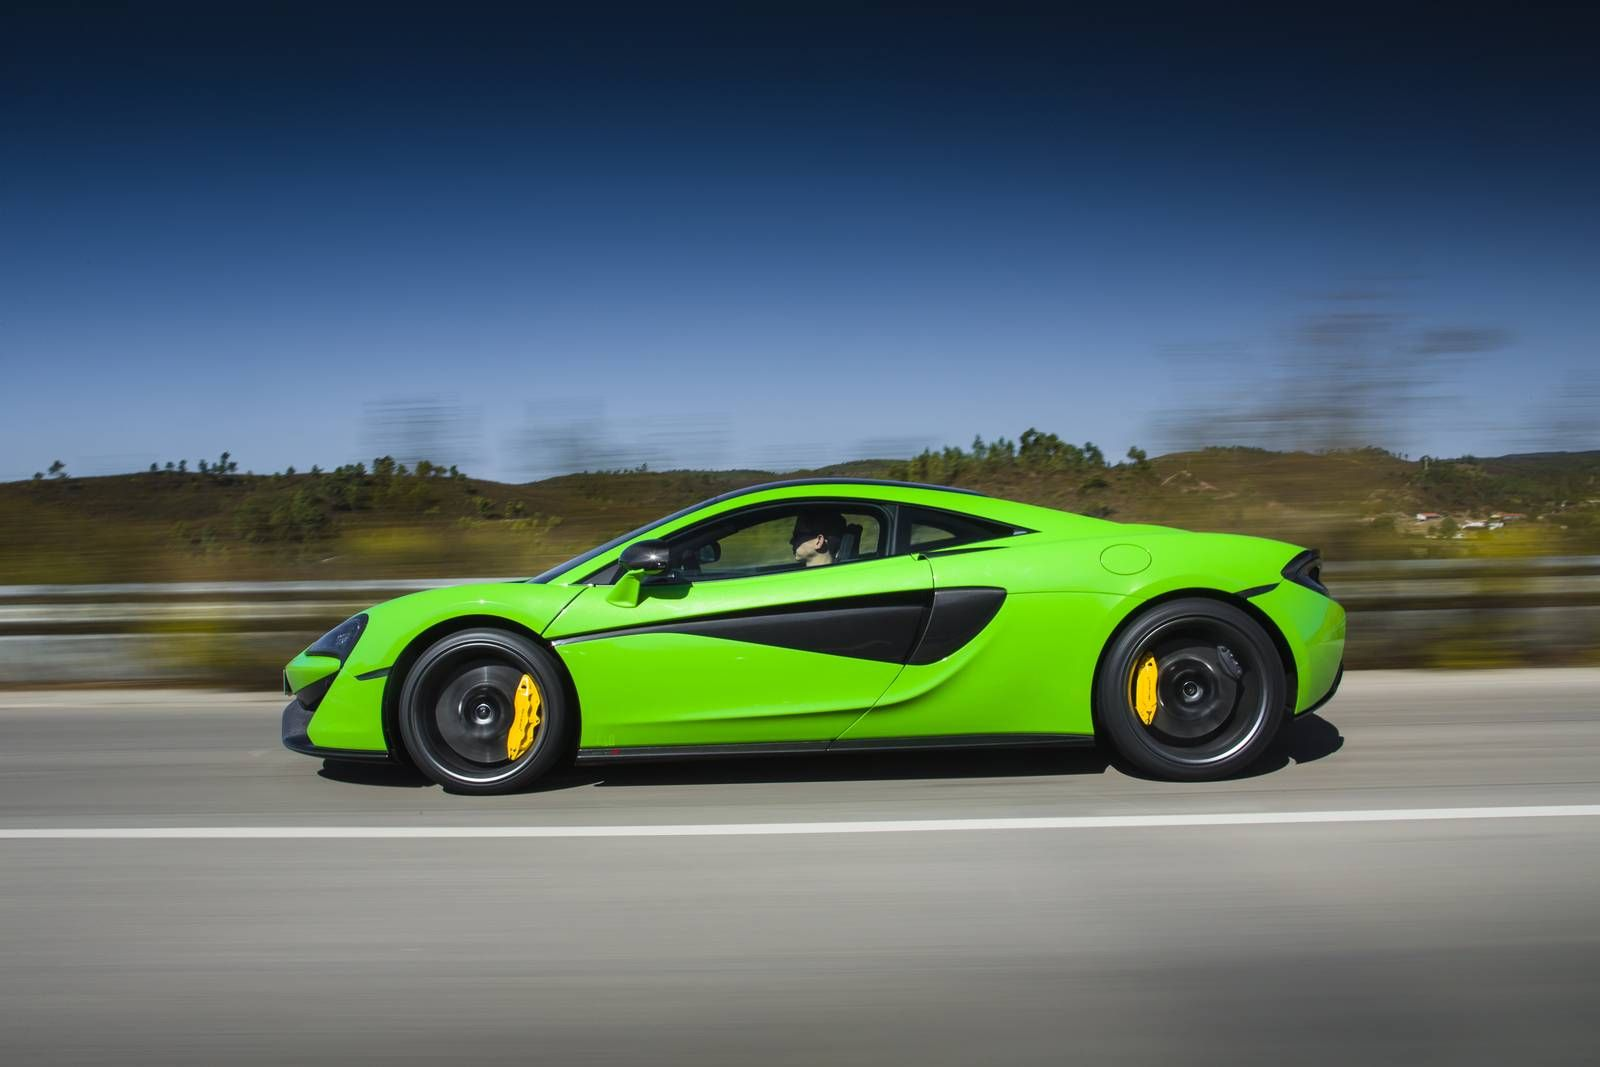 The McLaren_570S' production was inaugurated. Find more